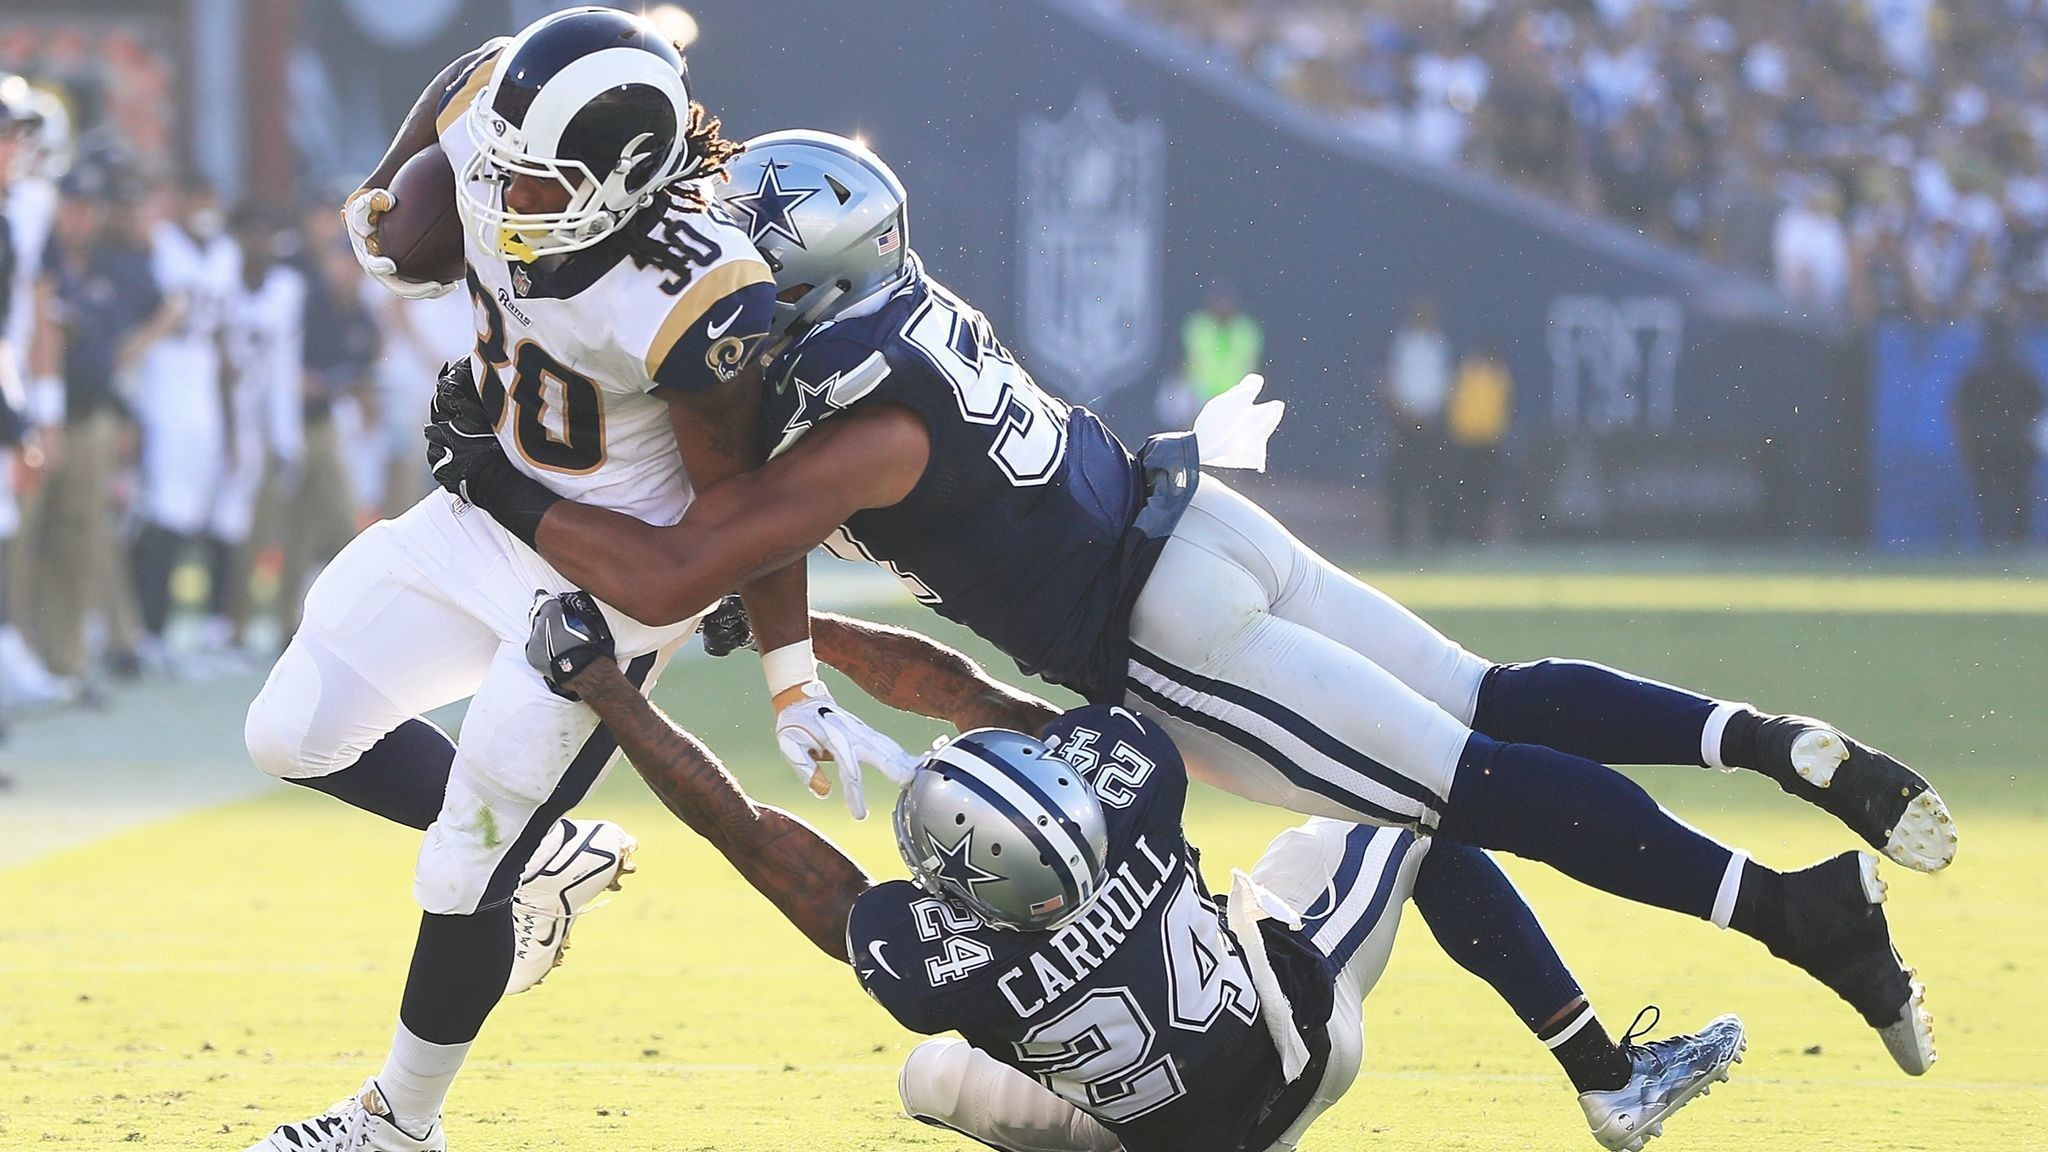 Rams running back Todd Gurley will get more carries during preseason, Coach  Sean McVay says – LA Times